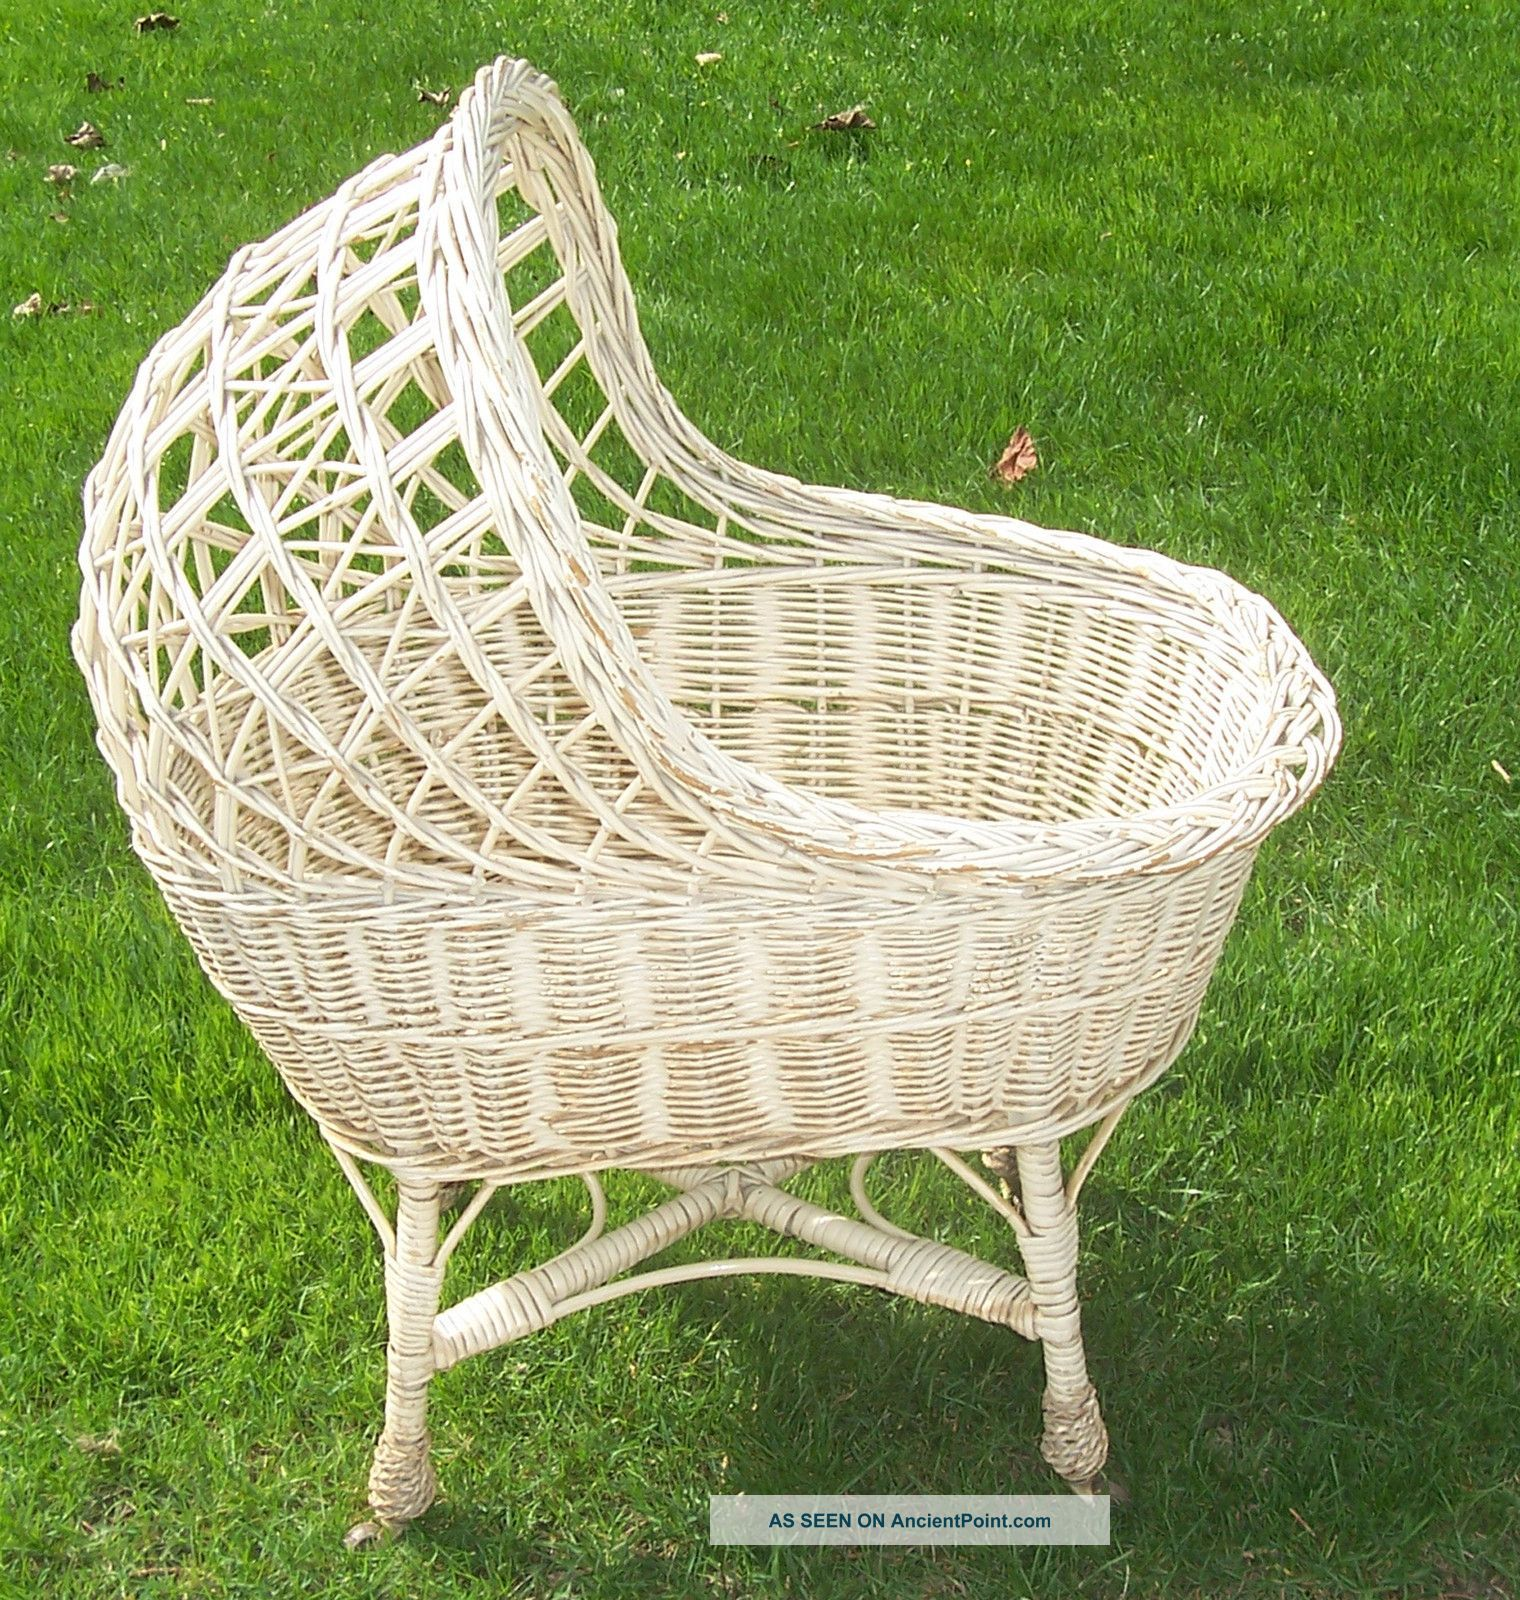 Baby crib hammock - Vintage Wicker Wood Basket Baby Infant Nursery Bassinet Travel Bed Crib Doll Toy Baby Cradles Photo